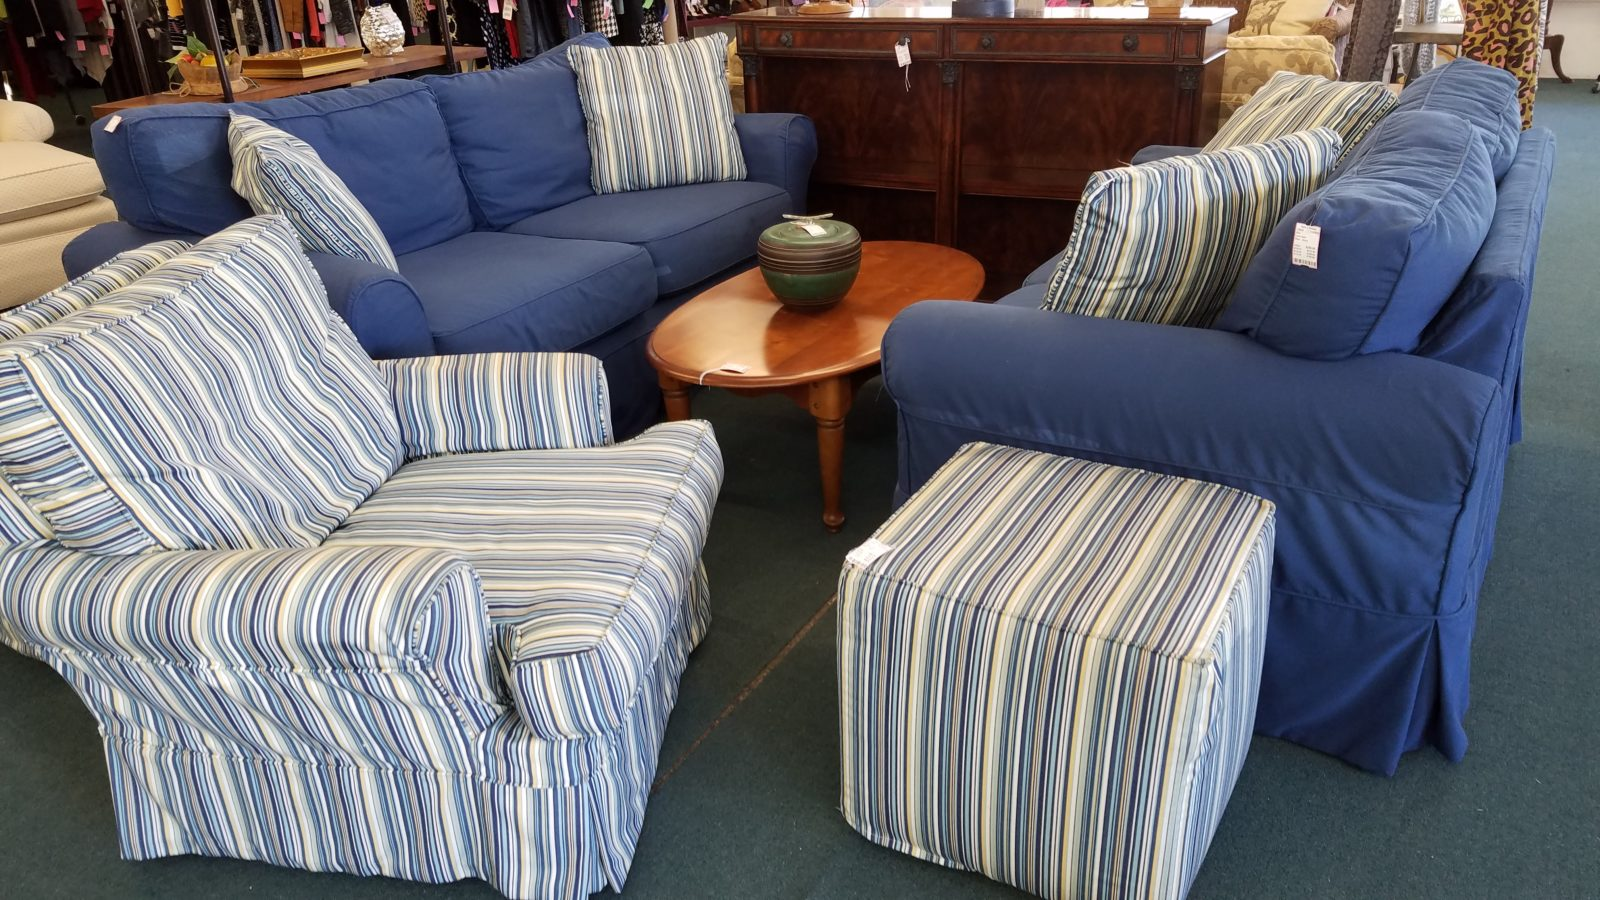 Blue Slip Covered Furniture Take 2 Resale ~ How To Coordinate Throw Pillows For Sofa And Chairs